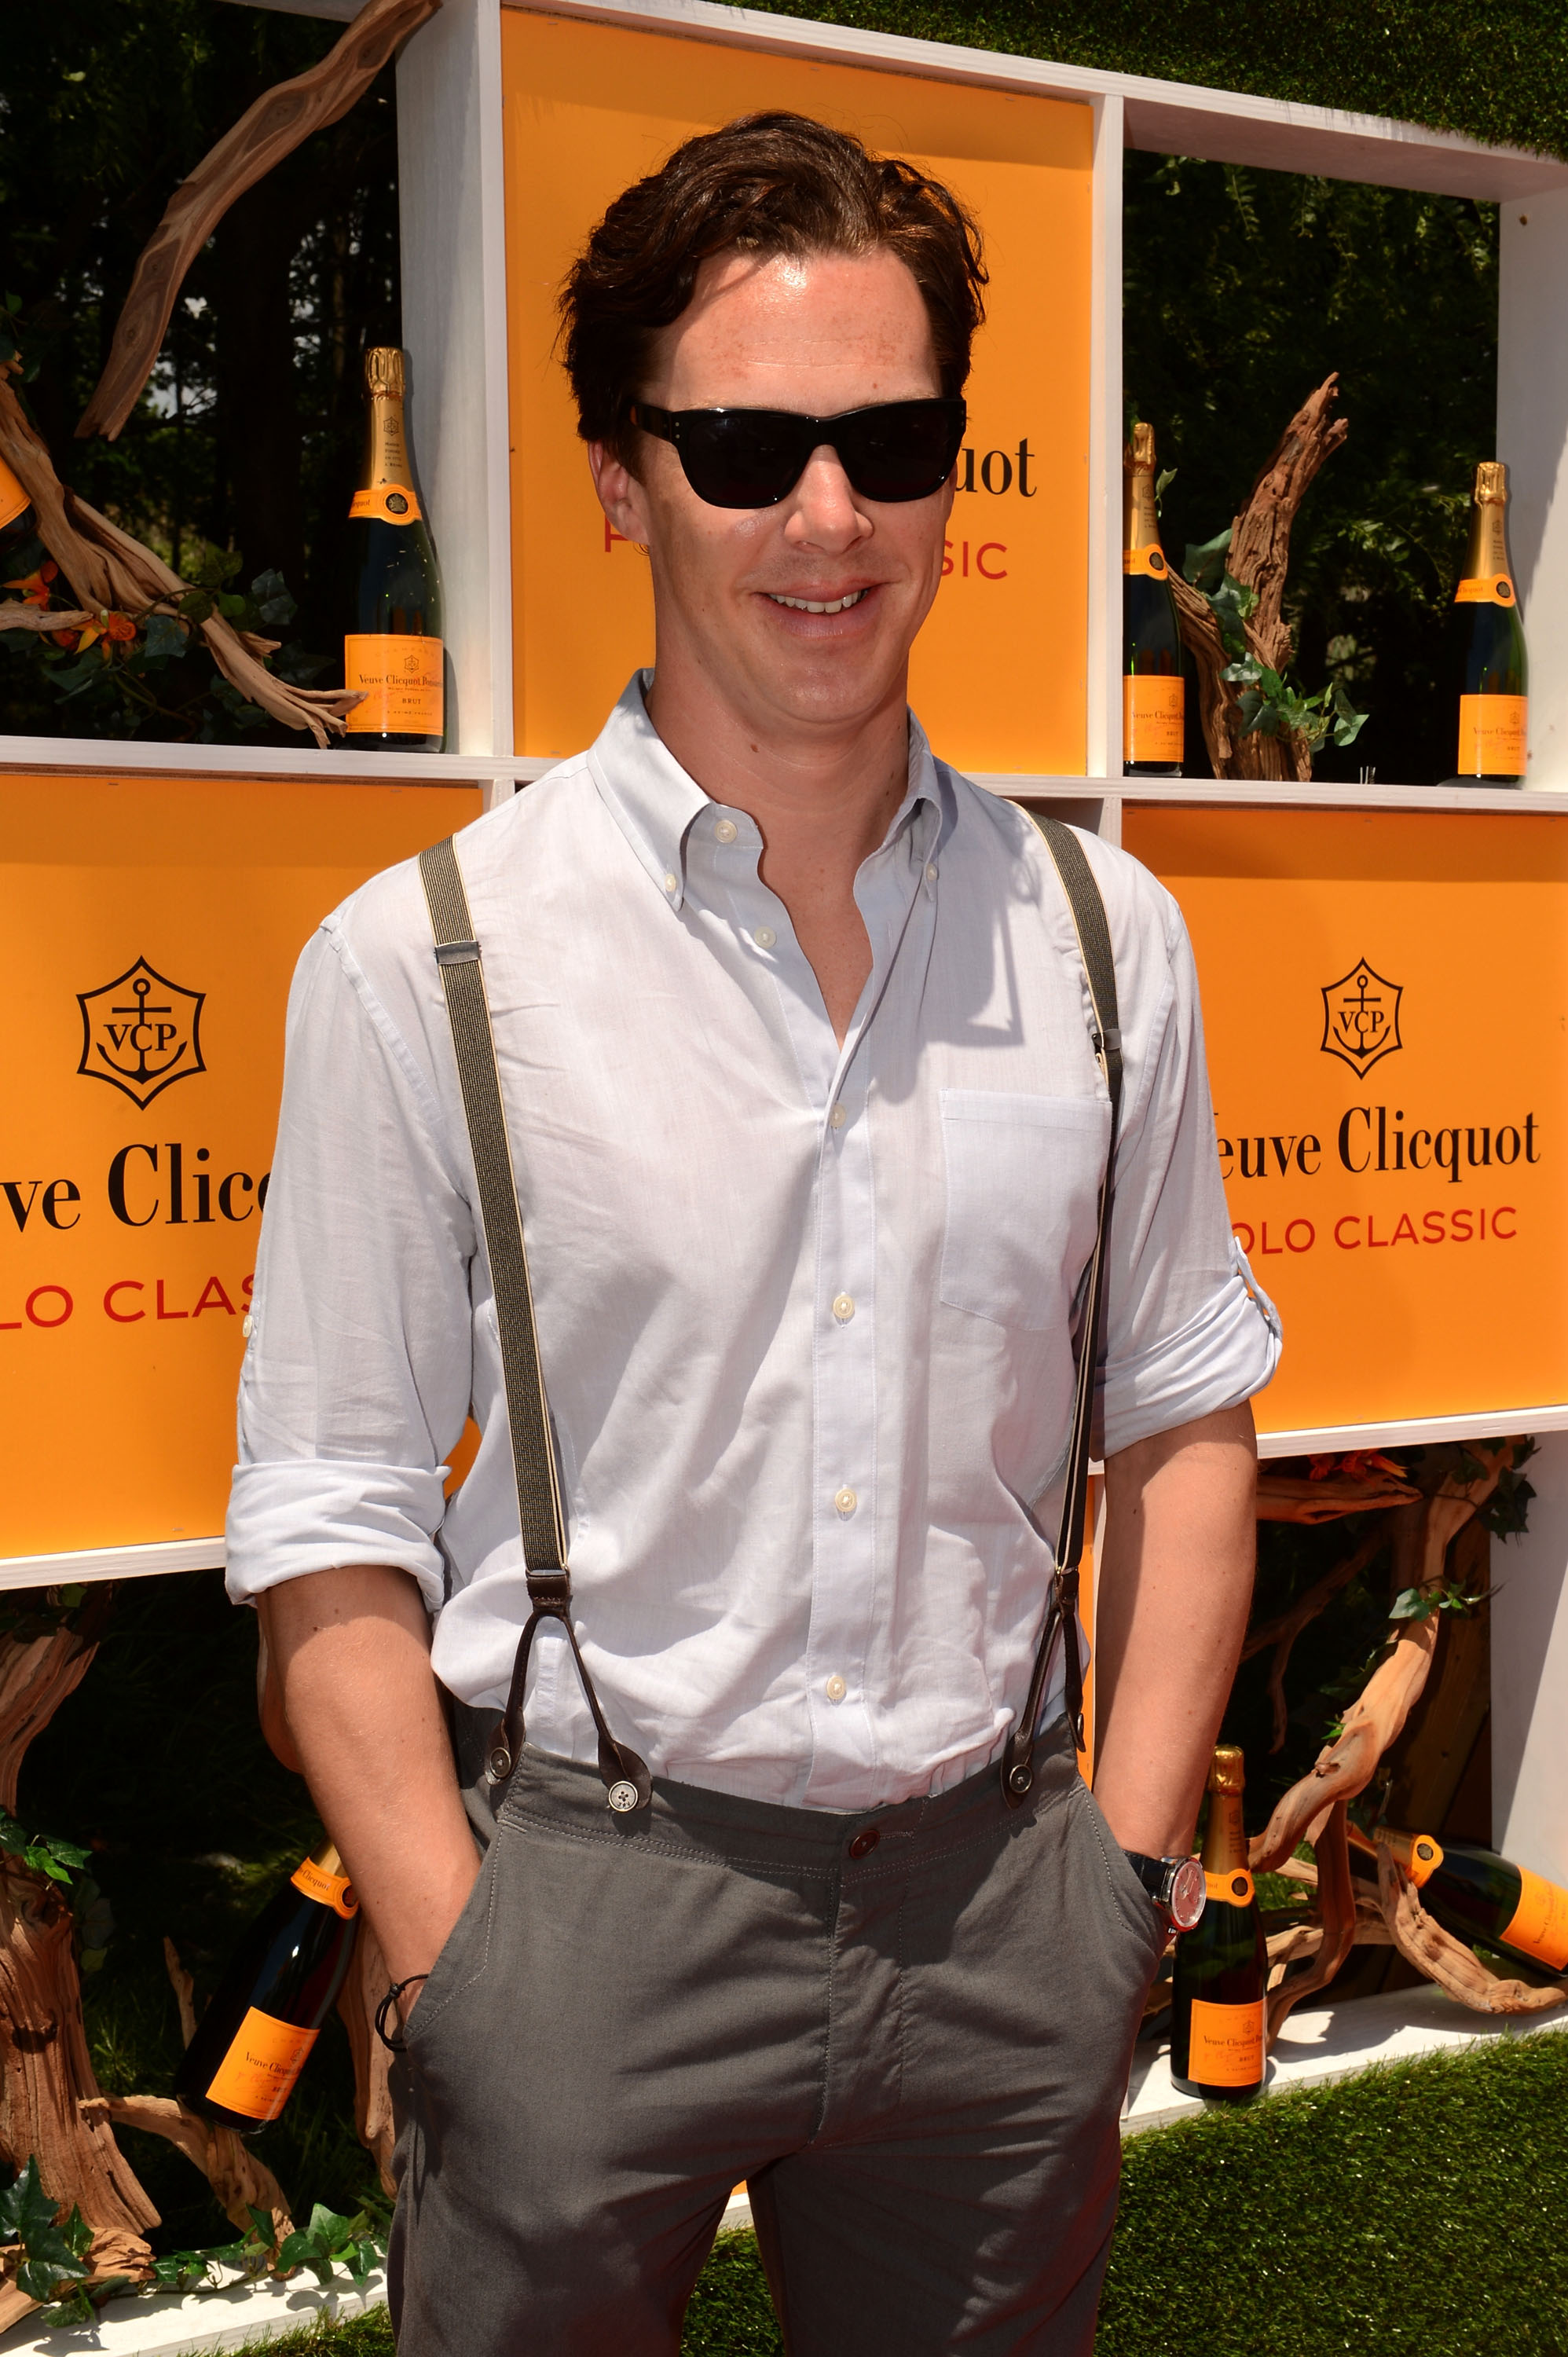 Coming soon: The Veuve Clicquot Polo Classic